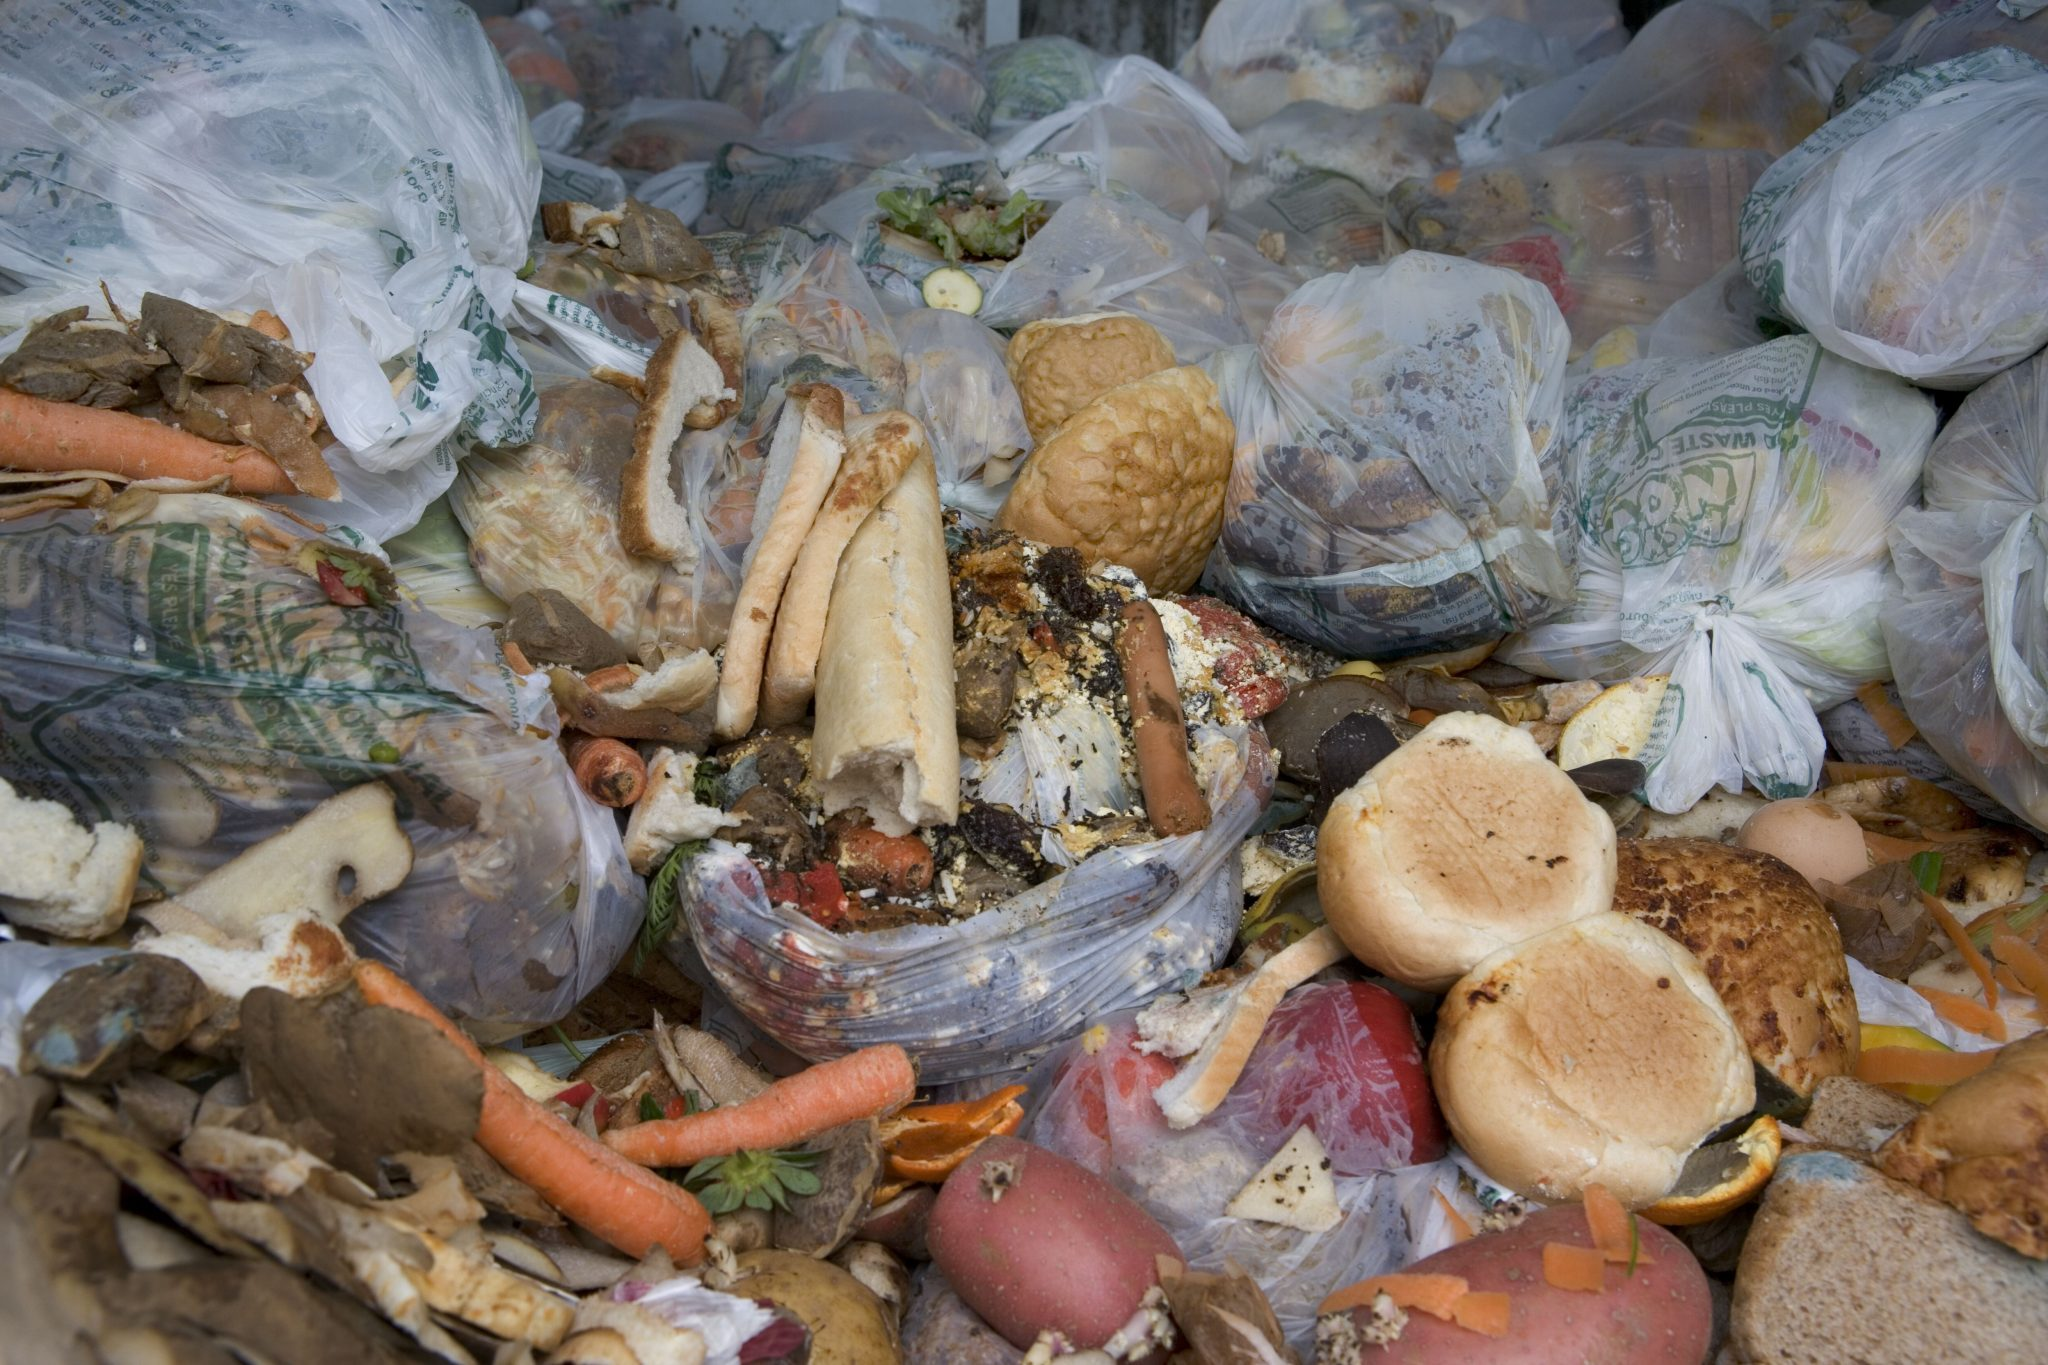 Surplus stock can be bought to avoid product waste